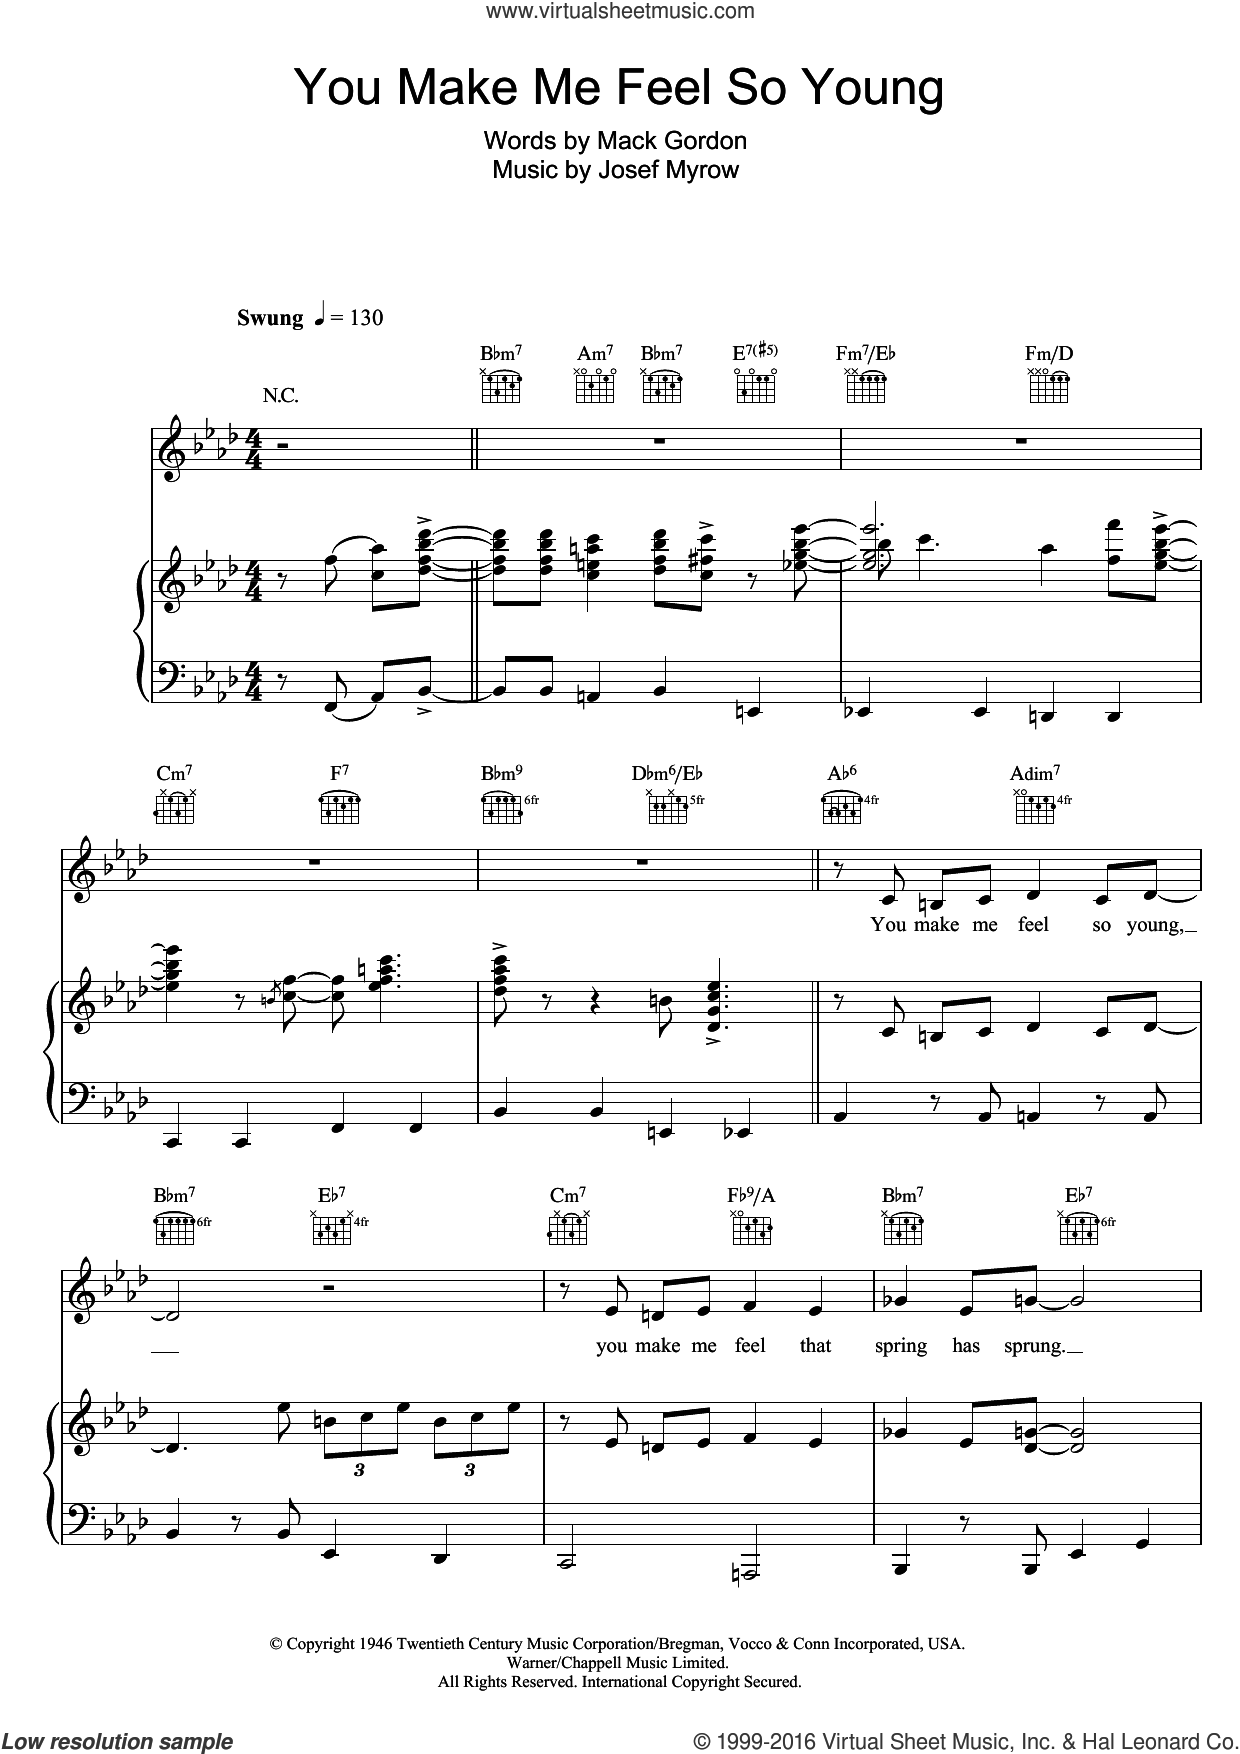 You Make Me Feel So Young sheet music for voice, piano or guitar by Michael Buble, Frank Sinatra, Josef Myrow and Mack Gordon, intermediate skill level